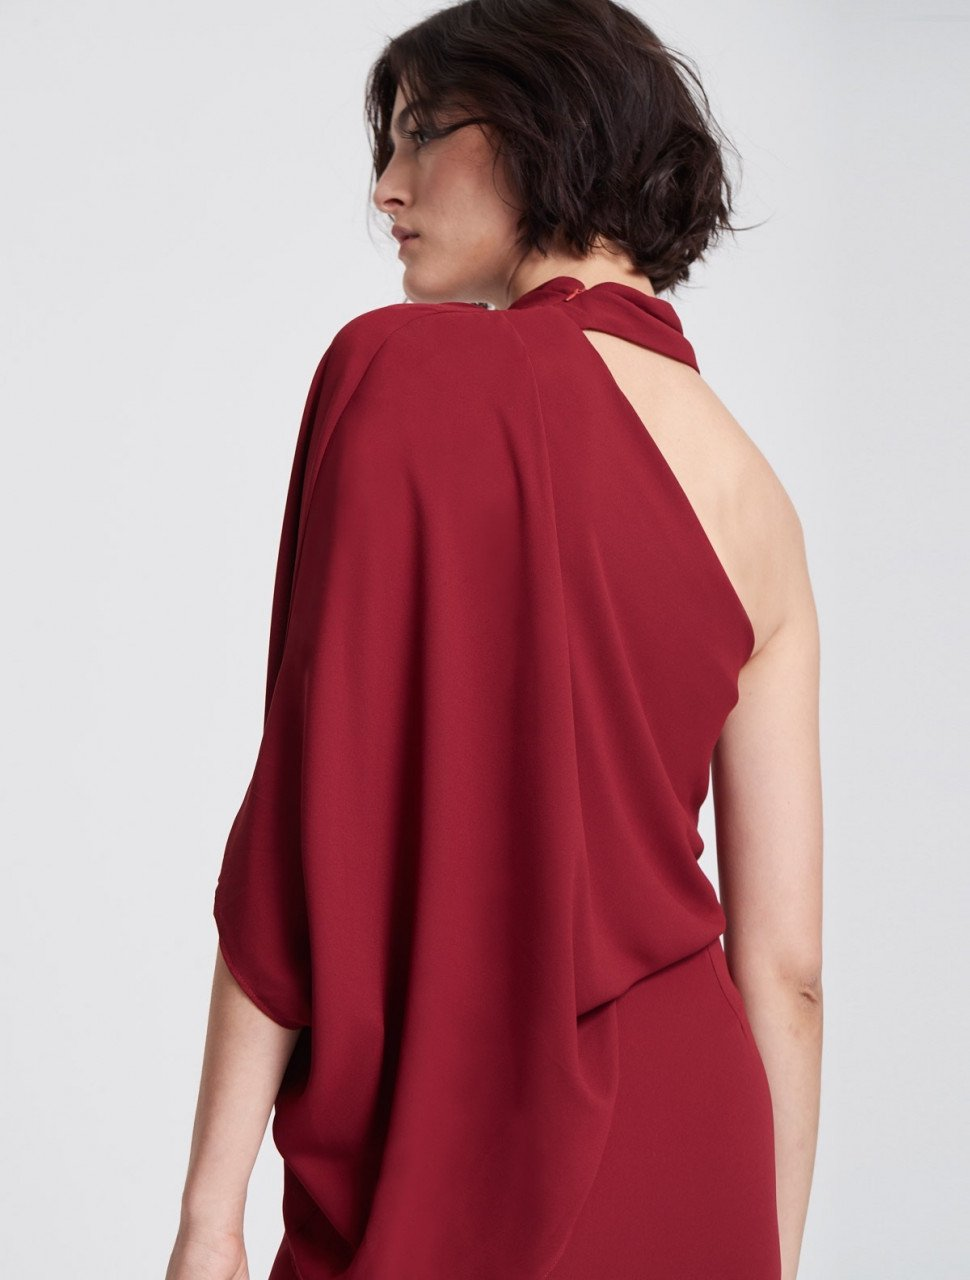 ICONIC ASYMMETRIC DRAPED DRESS